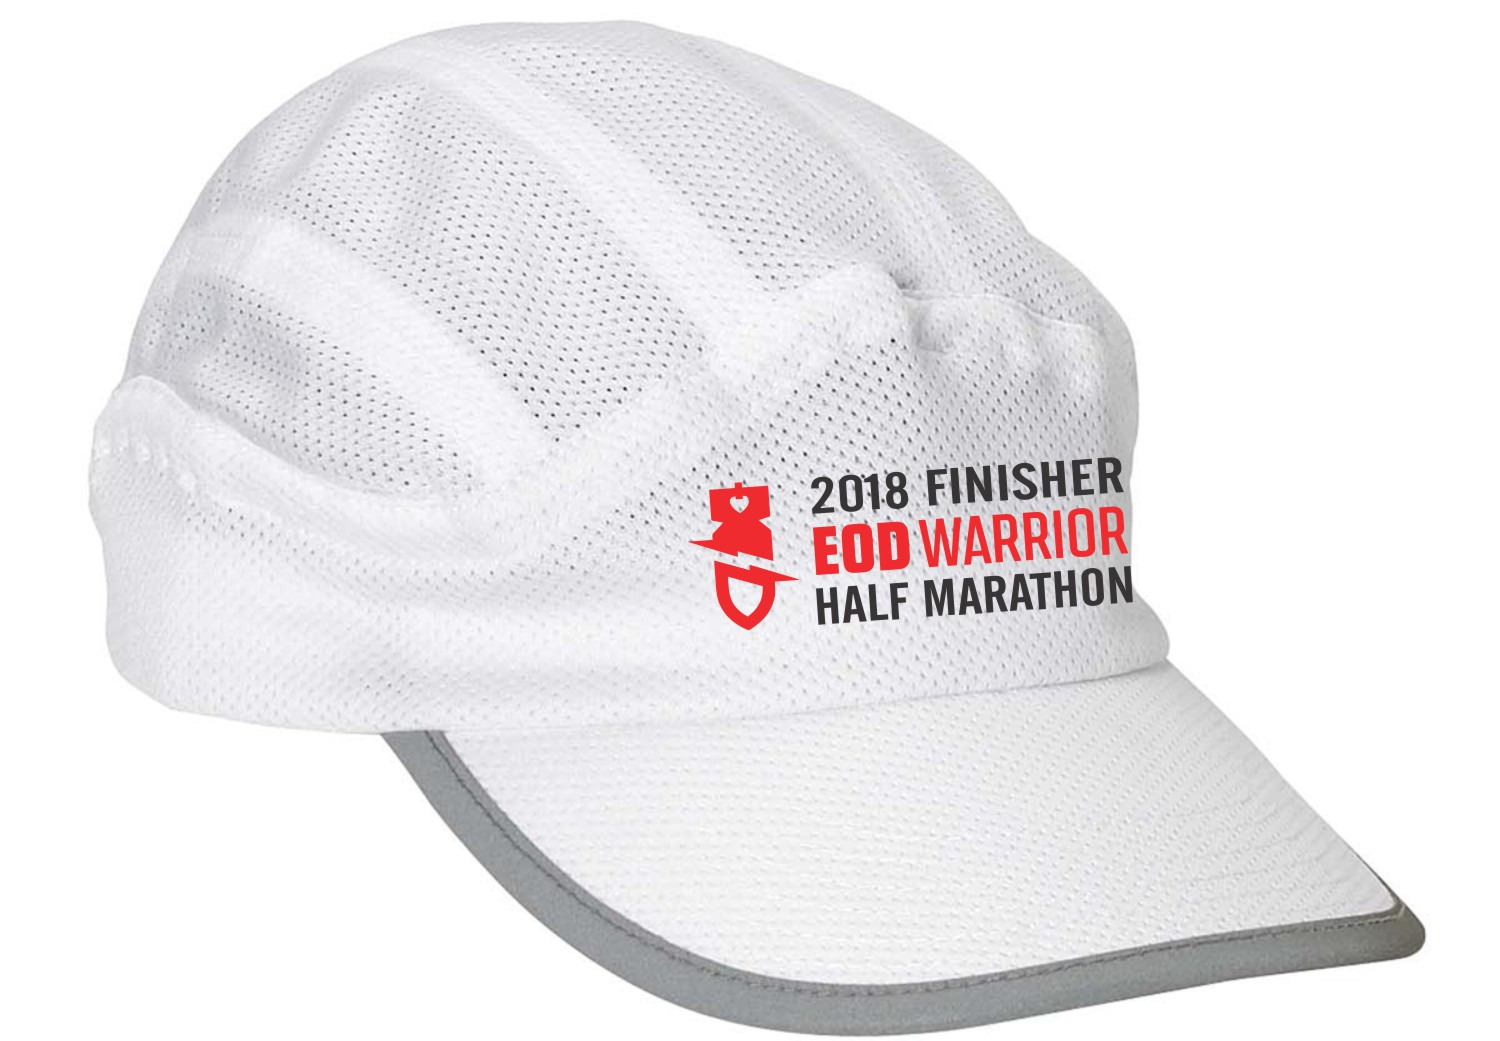 new style a05b2 ddbfe ... france finishers hat see image below finishers medal technical drifit  event shirt a chip timed event